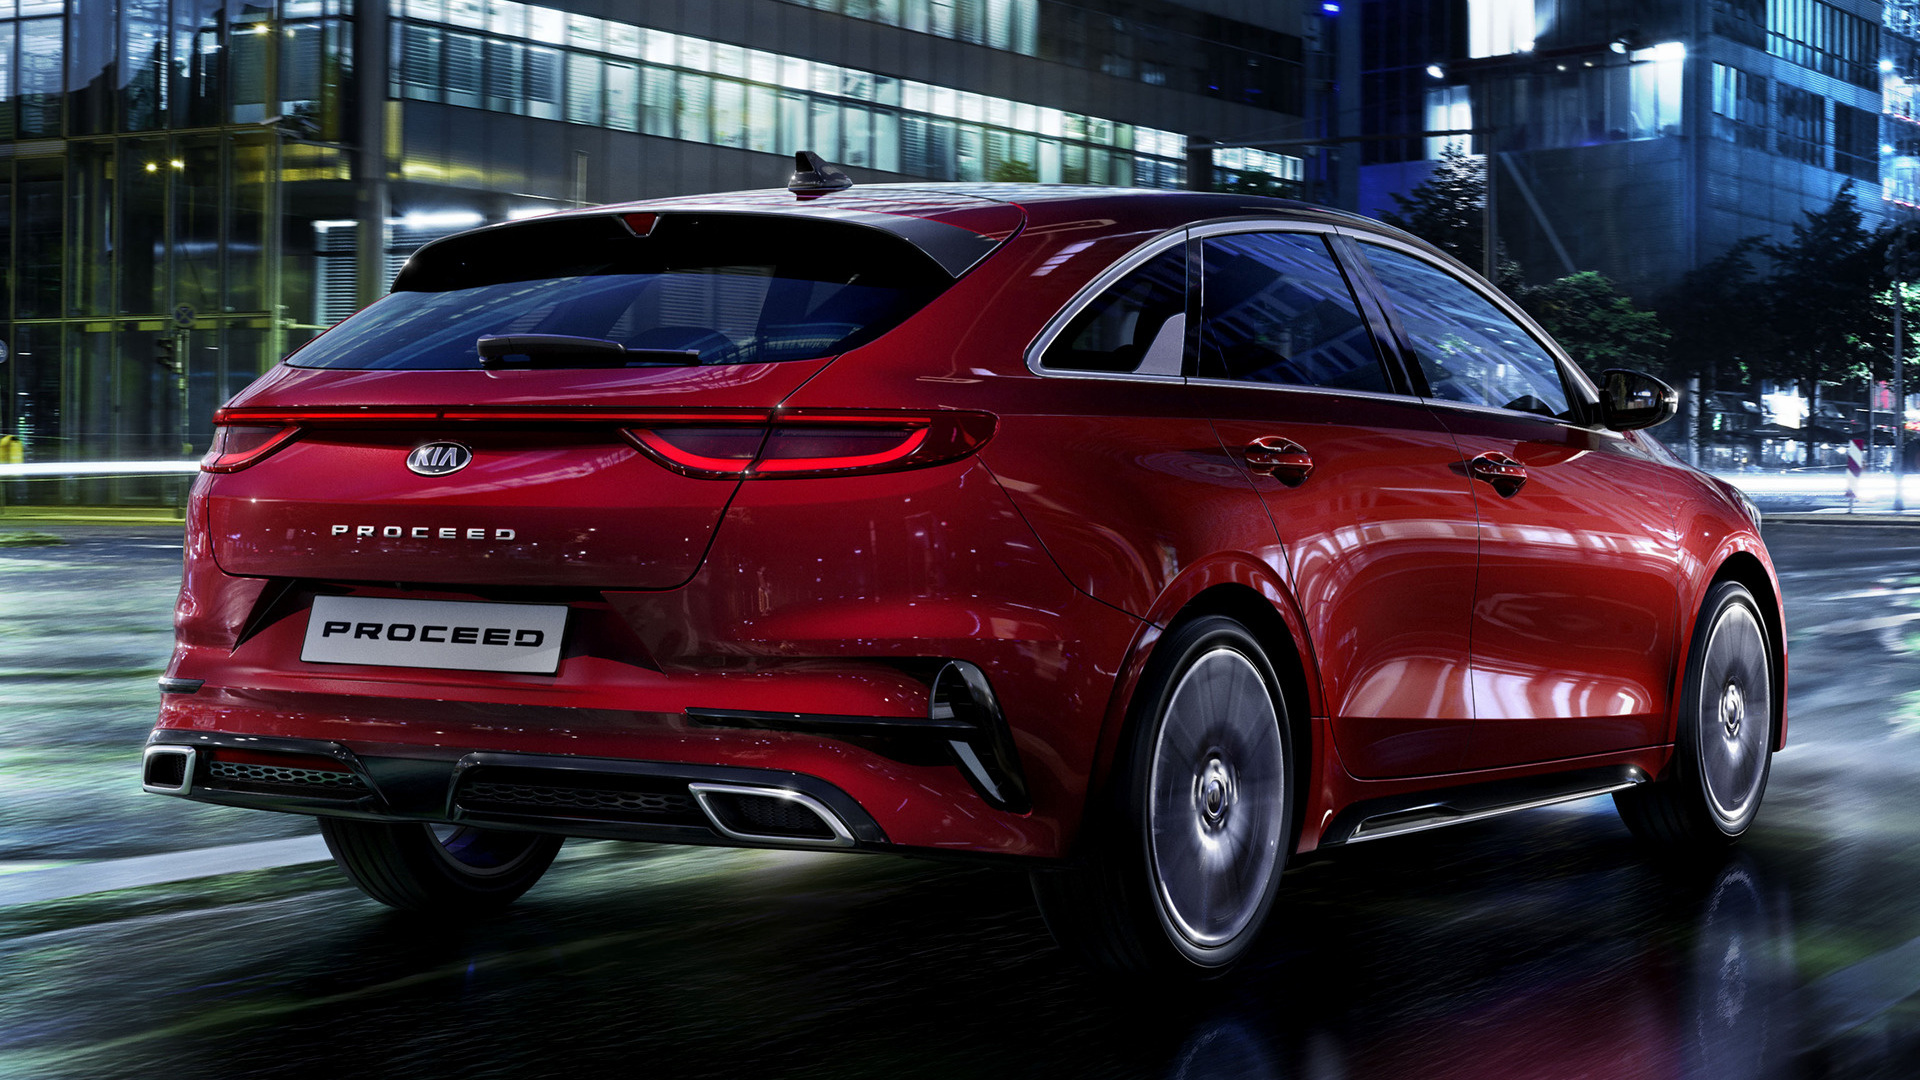 2019 Kia Proceed Gt Line Wallpapers And Hd Images Car